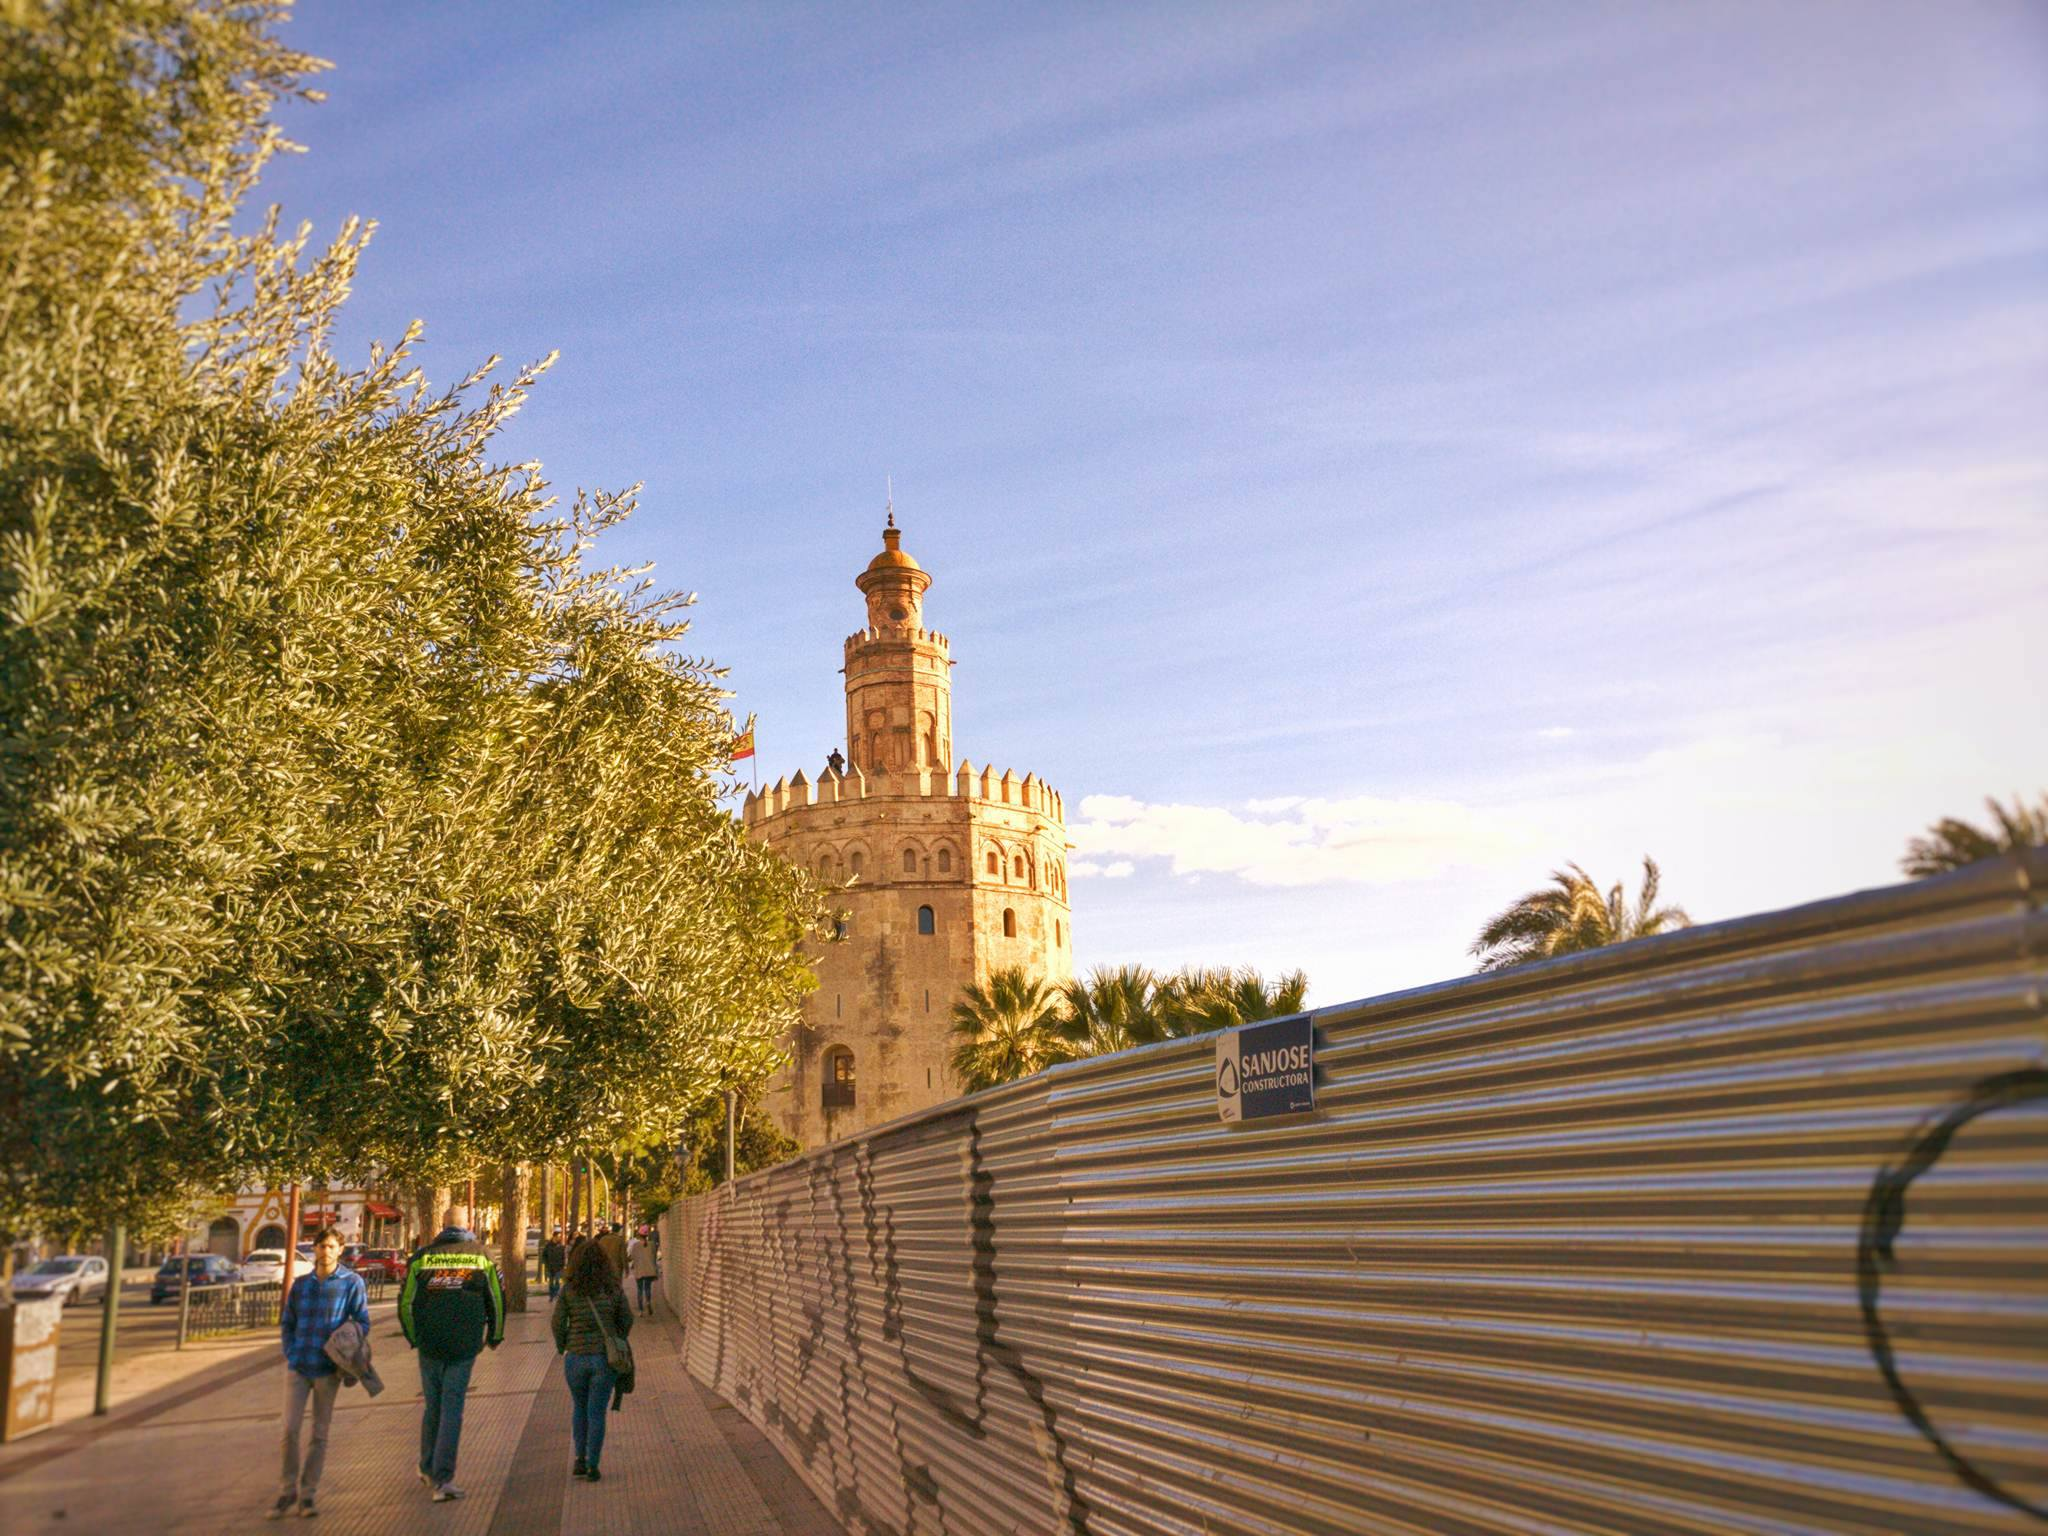 A view of la Torre del Oro in Seville, Spain in the setting sun